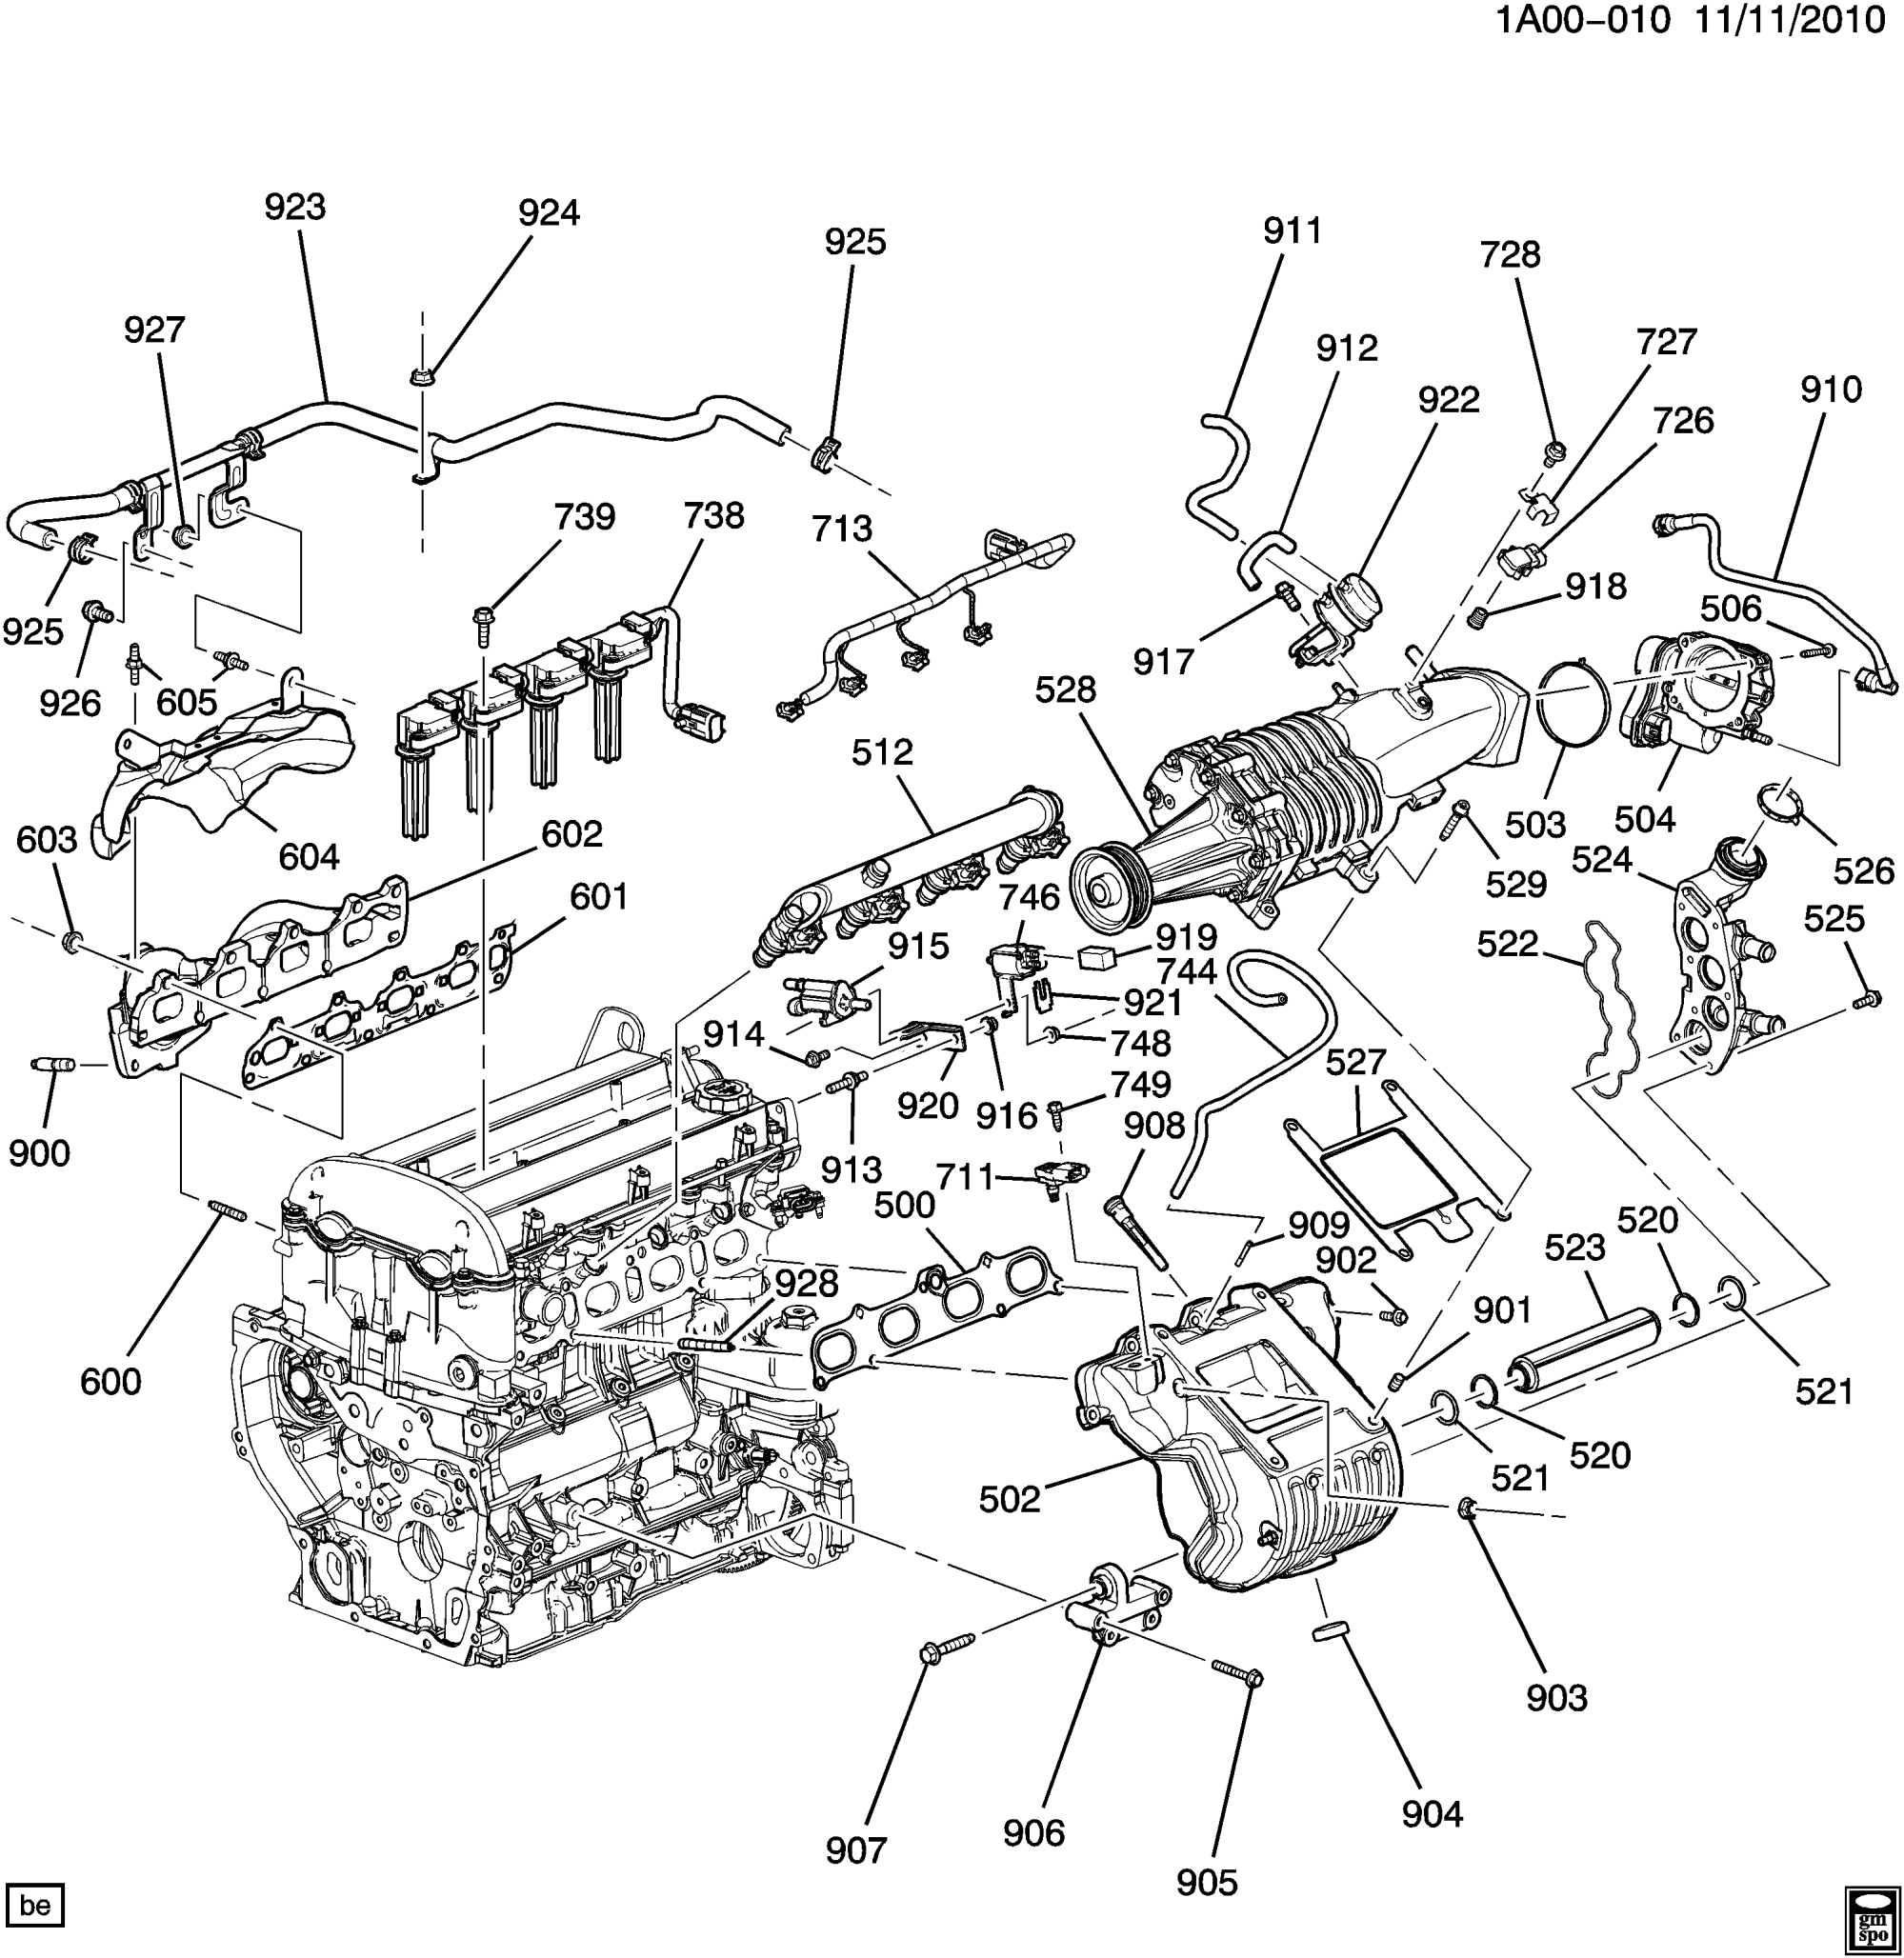 hight resolution of chevrolet cobalt engine diagram wiring diagrams konsult 2006 chevy cobalt 2 2 engine diagram